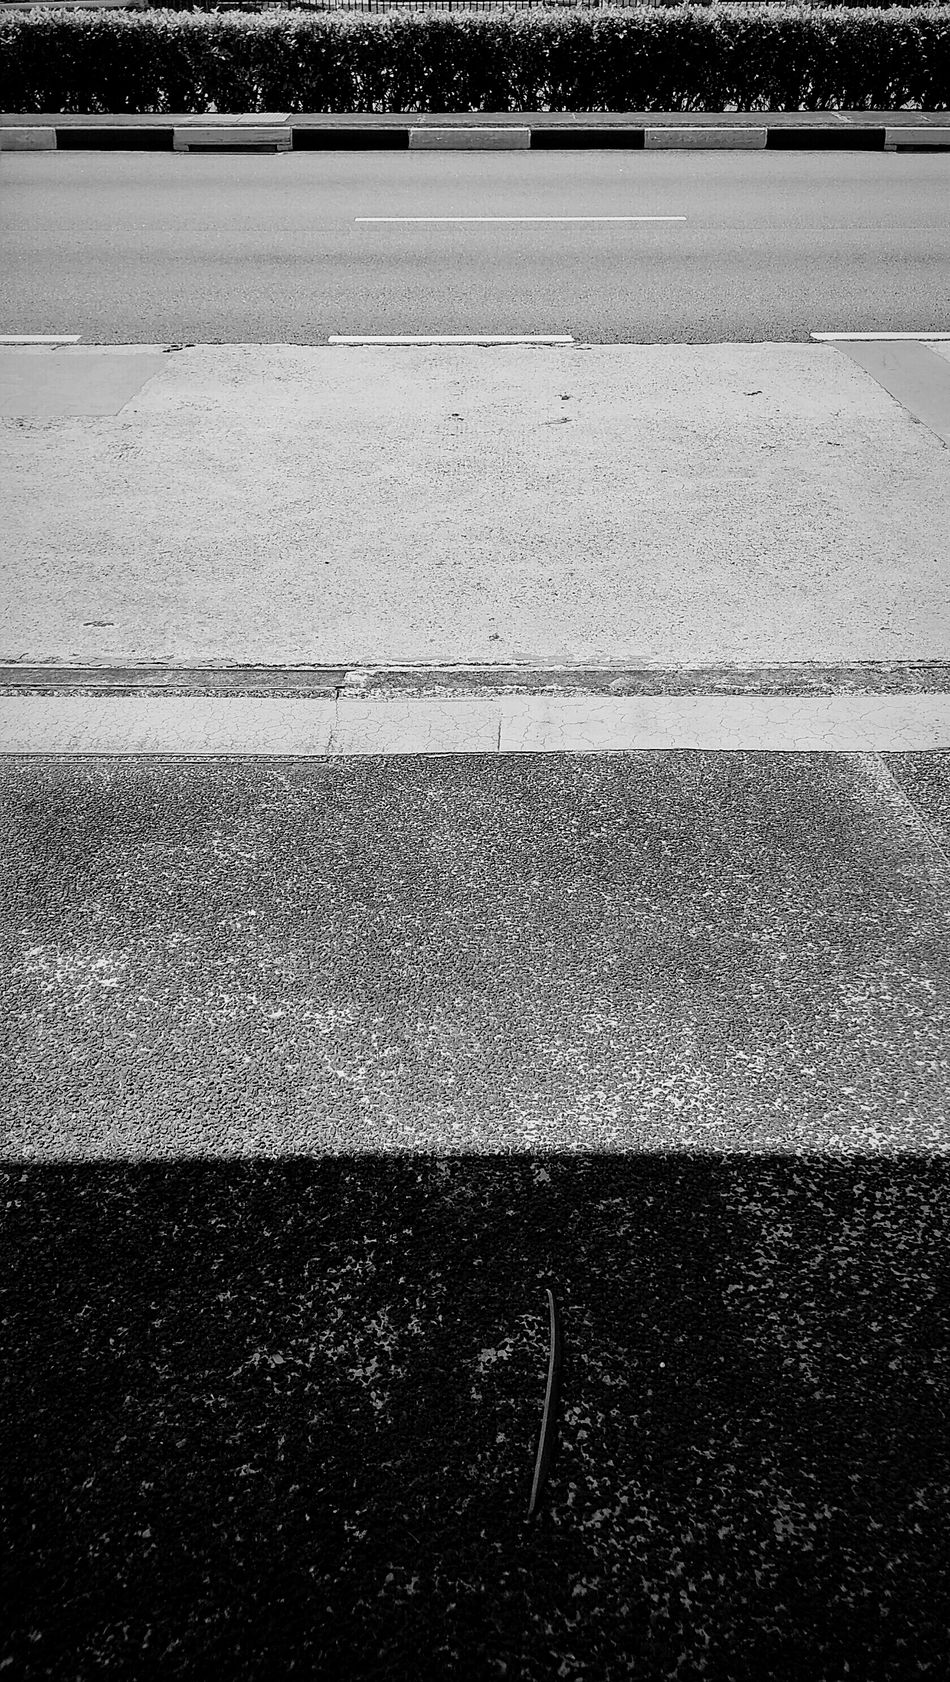 There are roads in this life that we all travel. There are scars and there are battles where we roam. When we are lost or wherever we may go, they will always lead you home. Singapore Roads Plain & Simple Black And White Contrast Rectangles Road To Nowhere Roadside Photography Singapore Road No Traffic